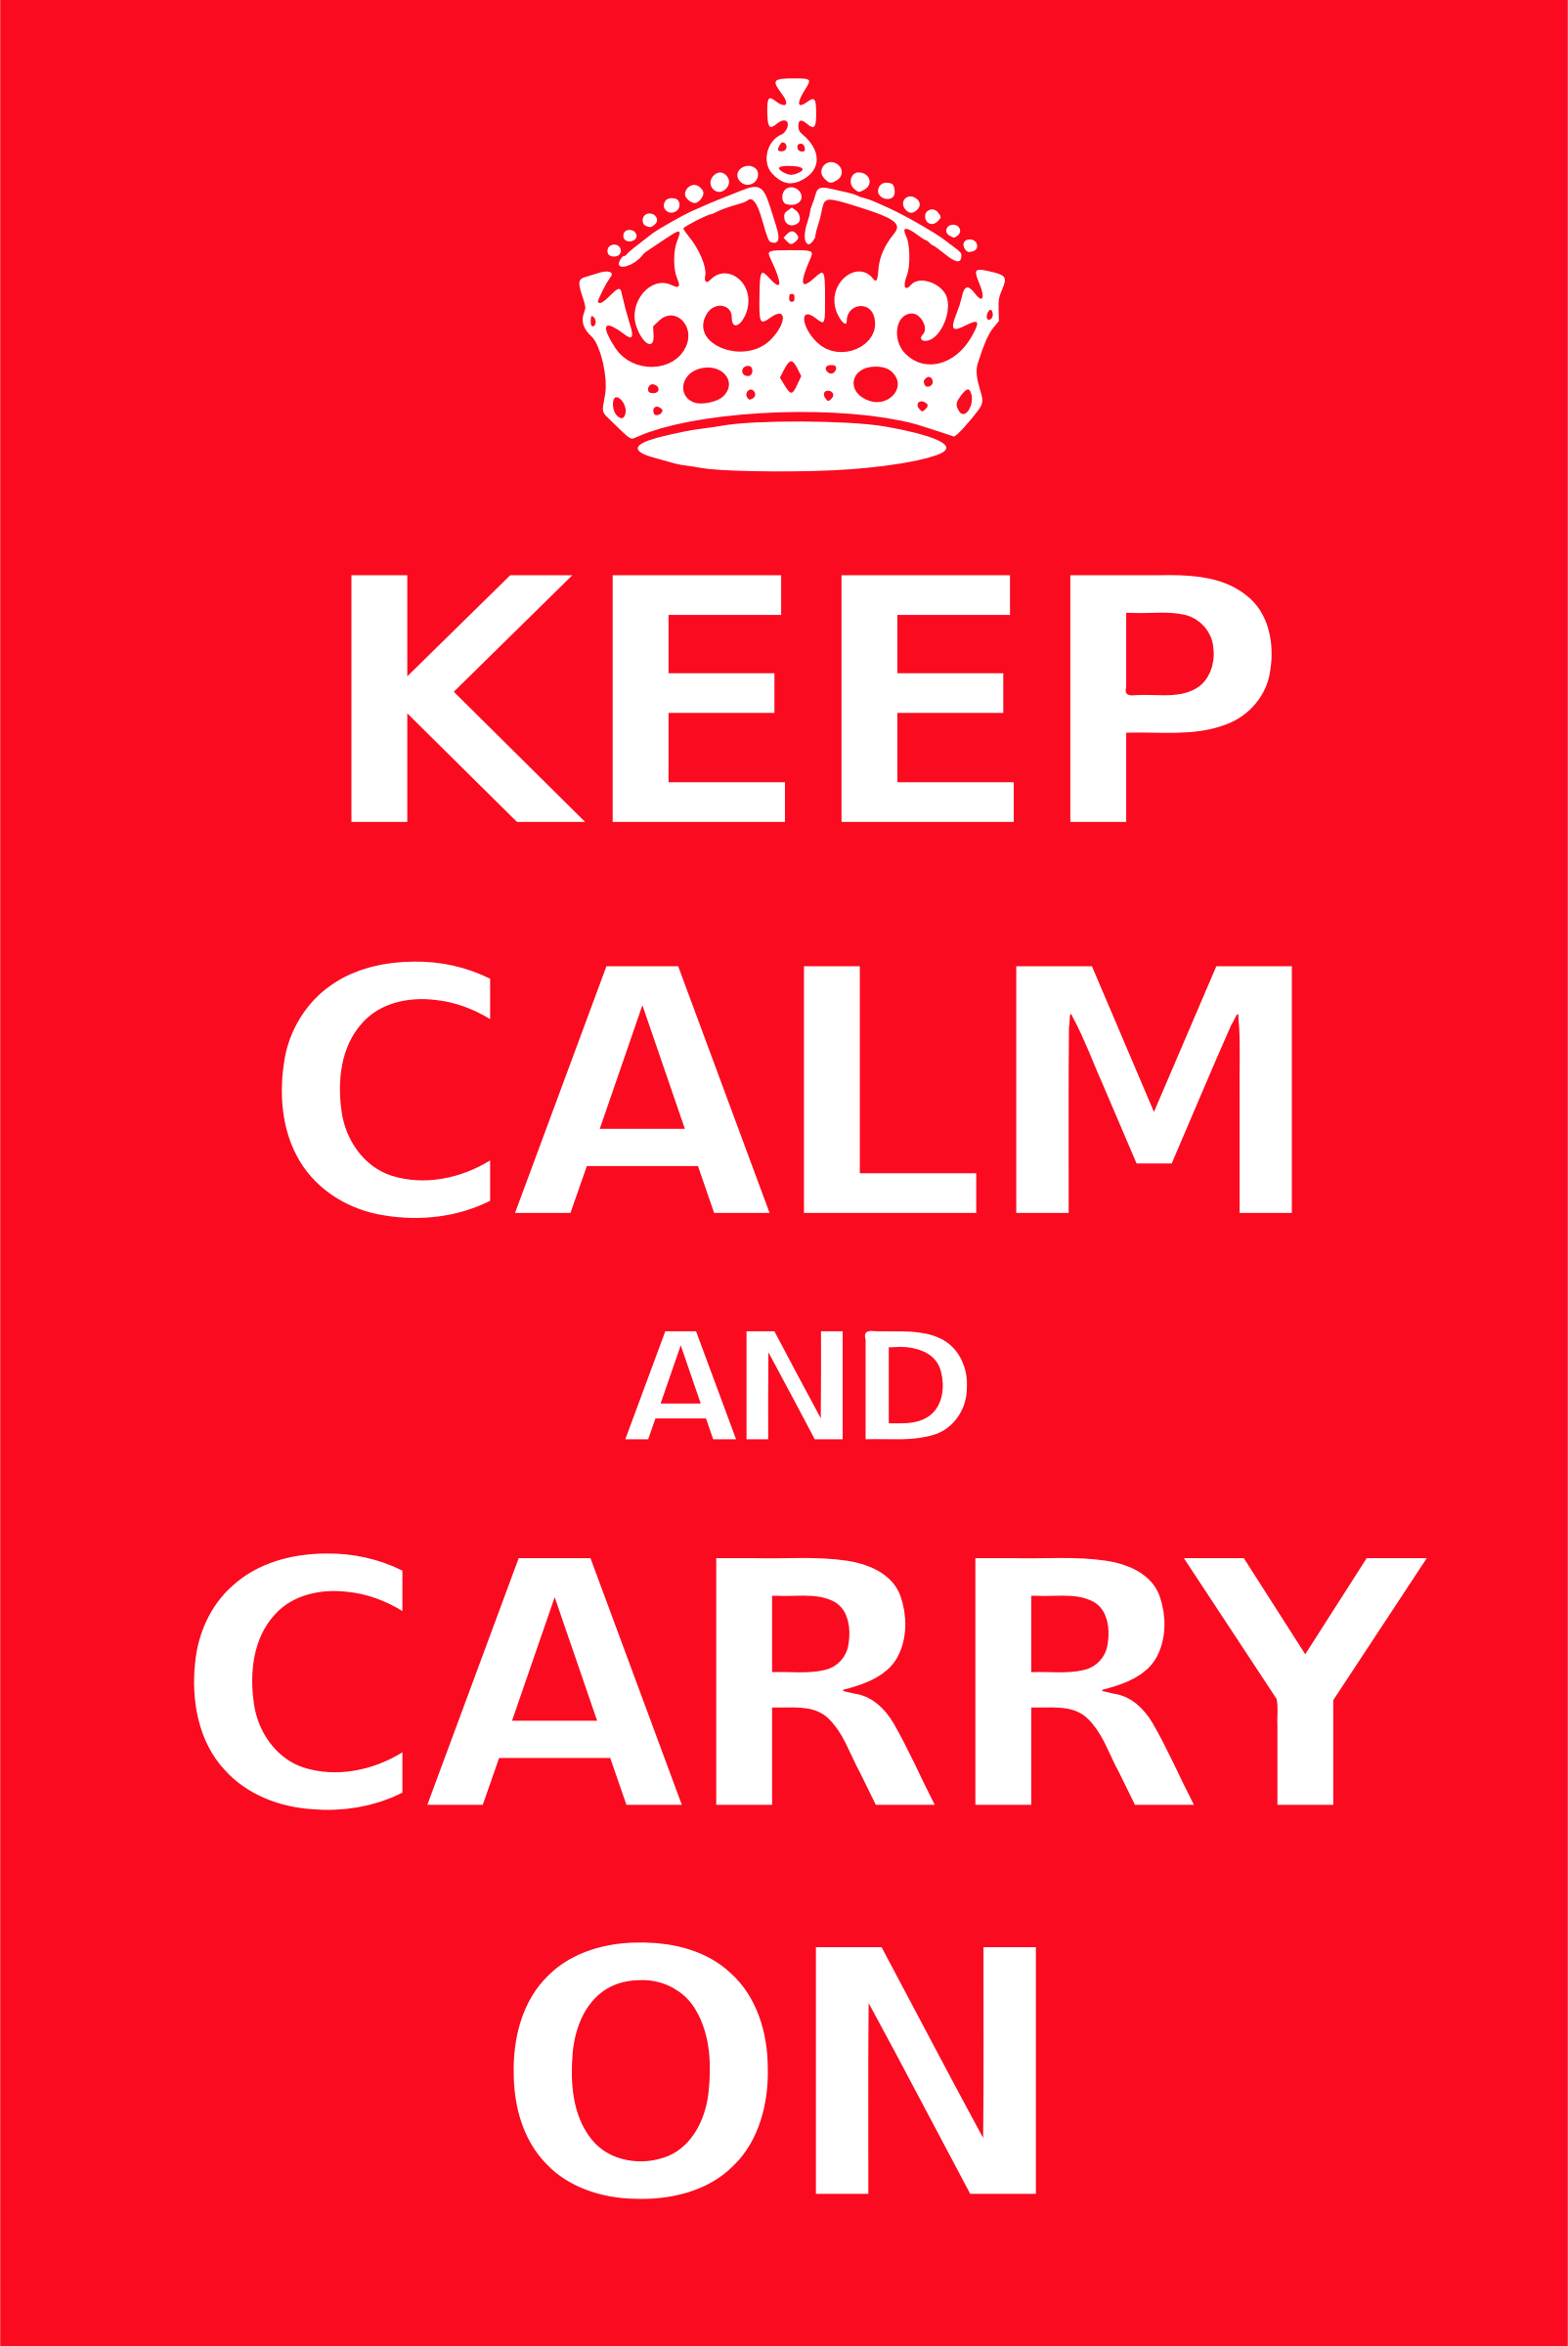 Poster big image png. Calm clipart keep calm